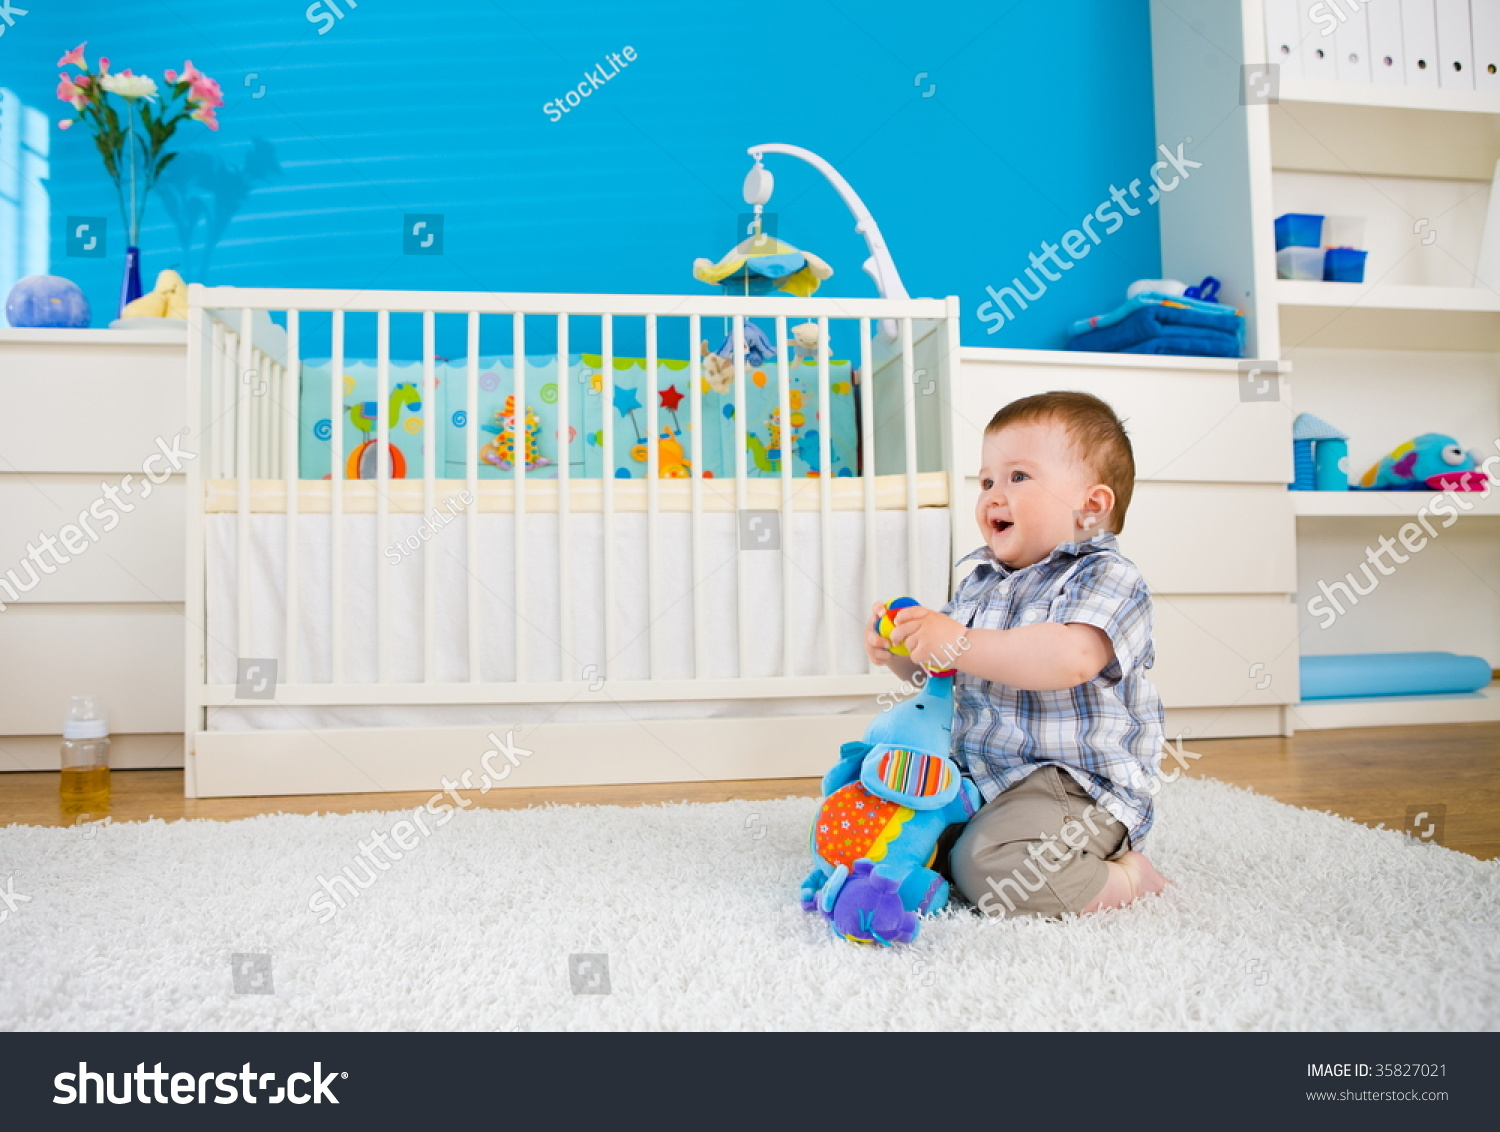 Sweet baby boy 1 year old sitting on floor at home and for Kinderzimmer 1 jahr